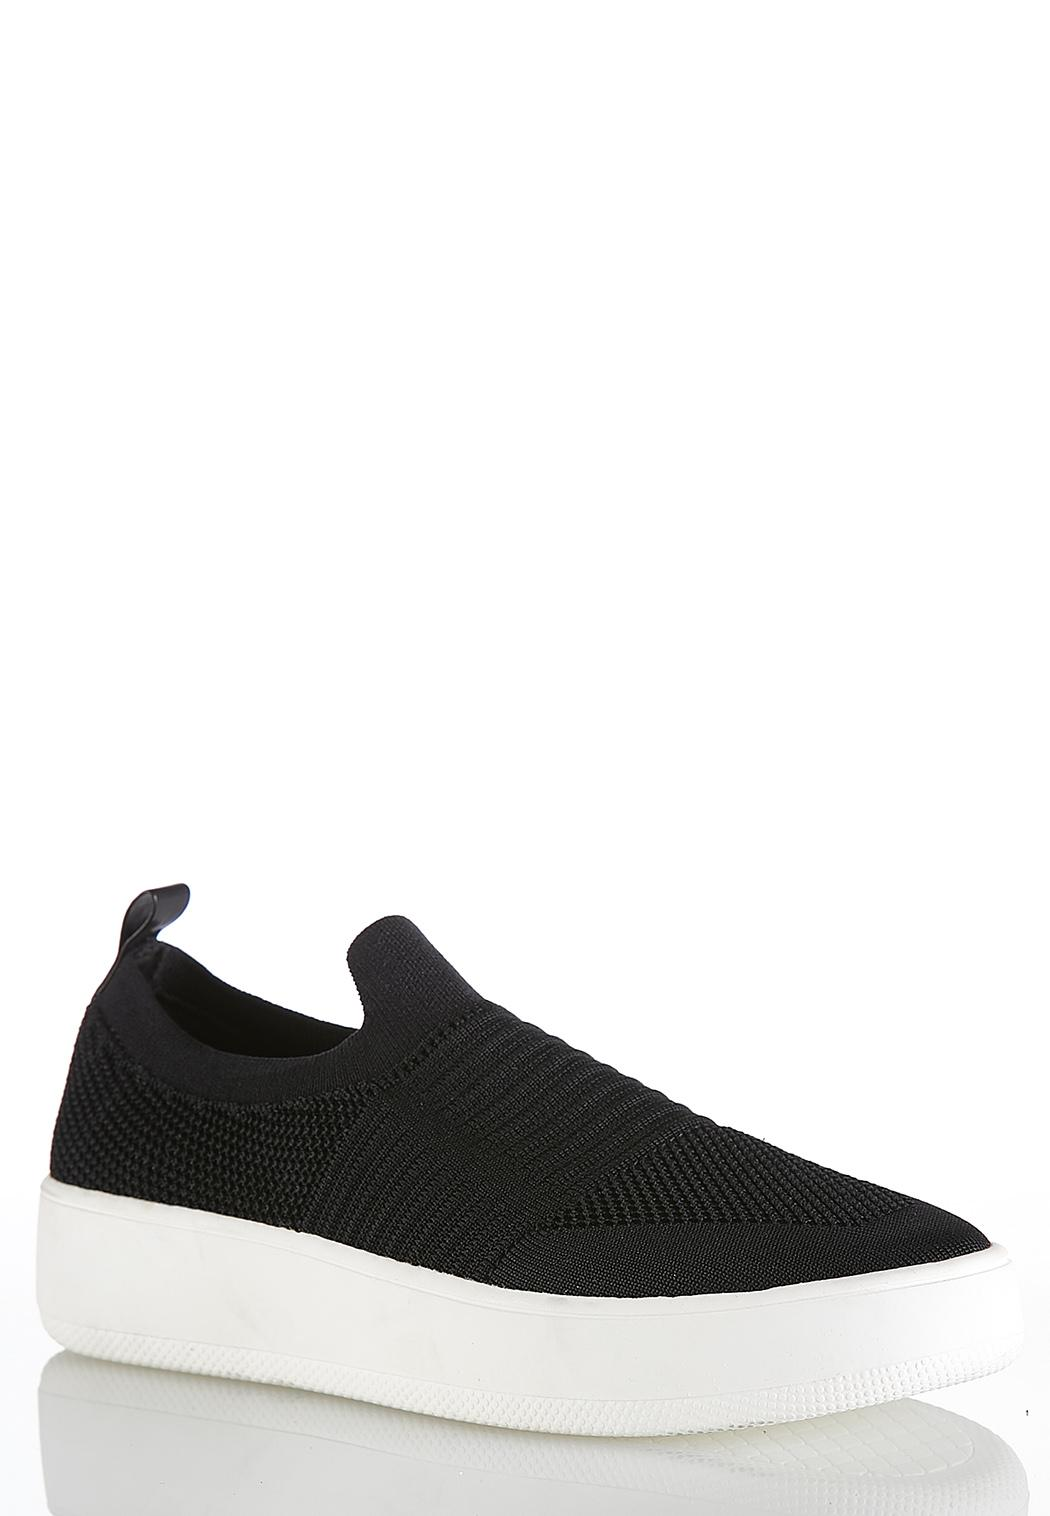 Stretch Knit Slip-On Sneakers